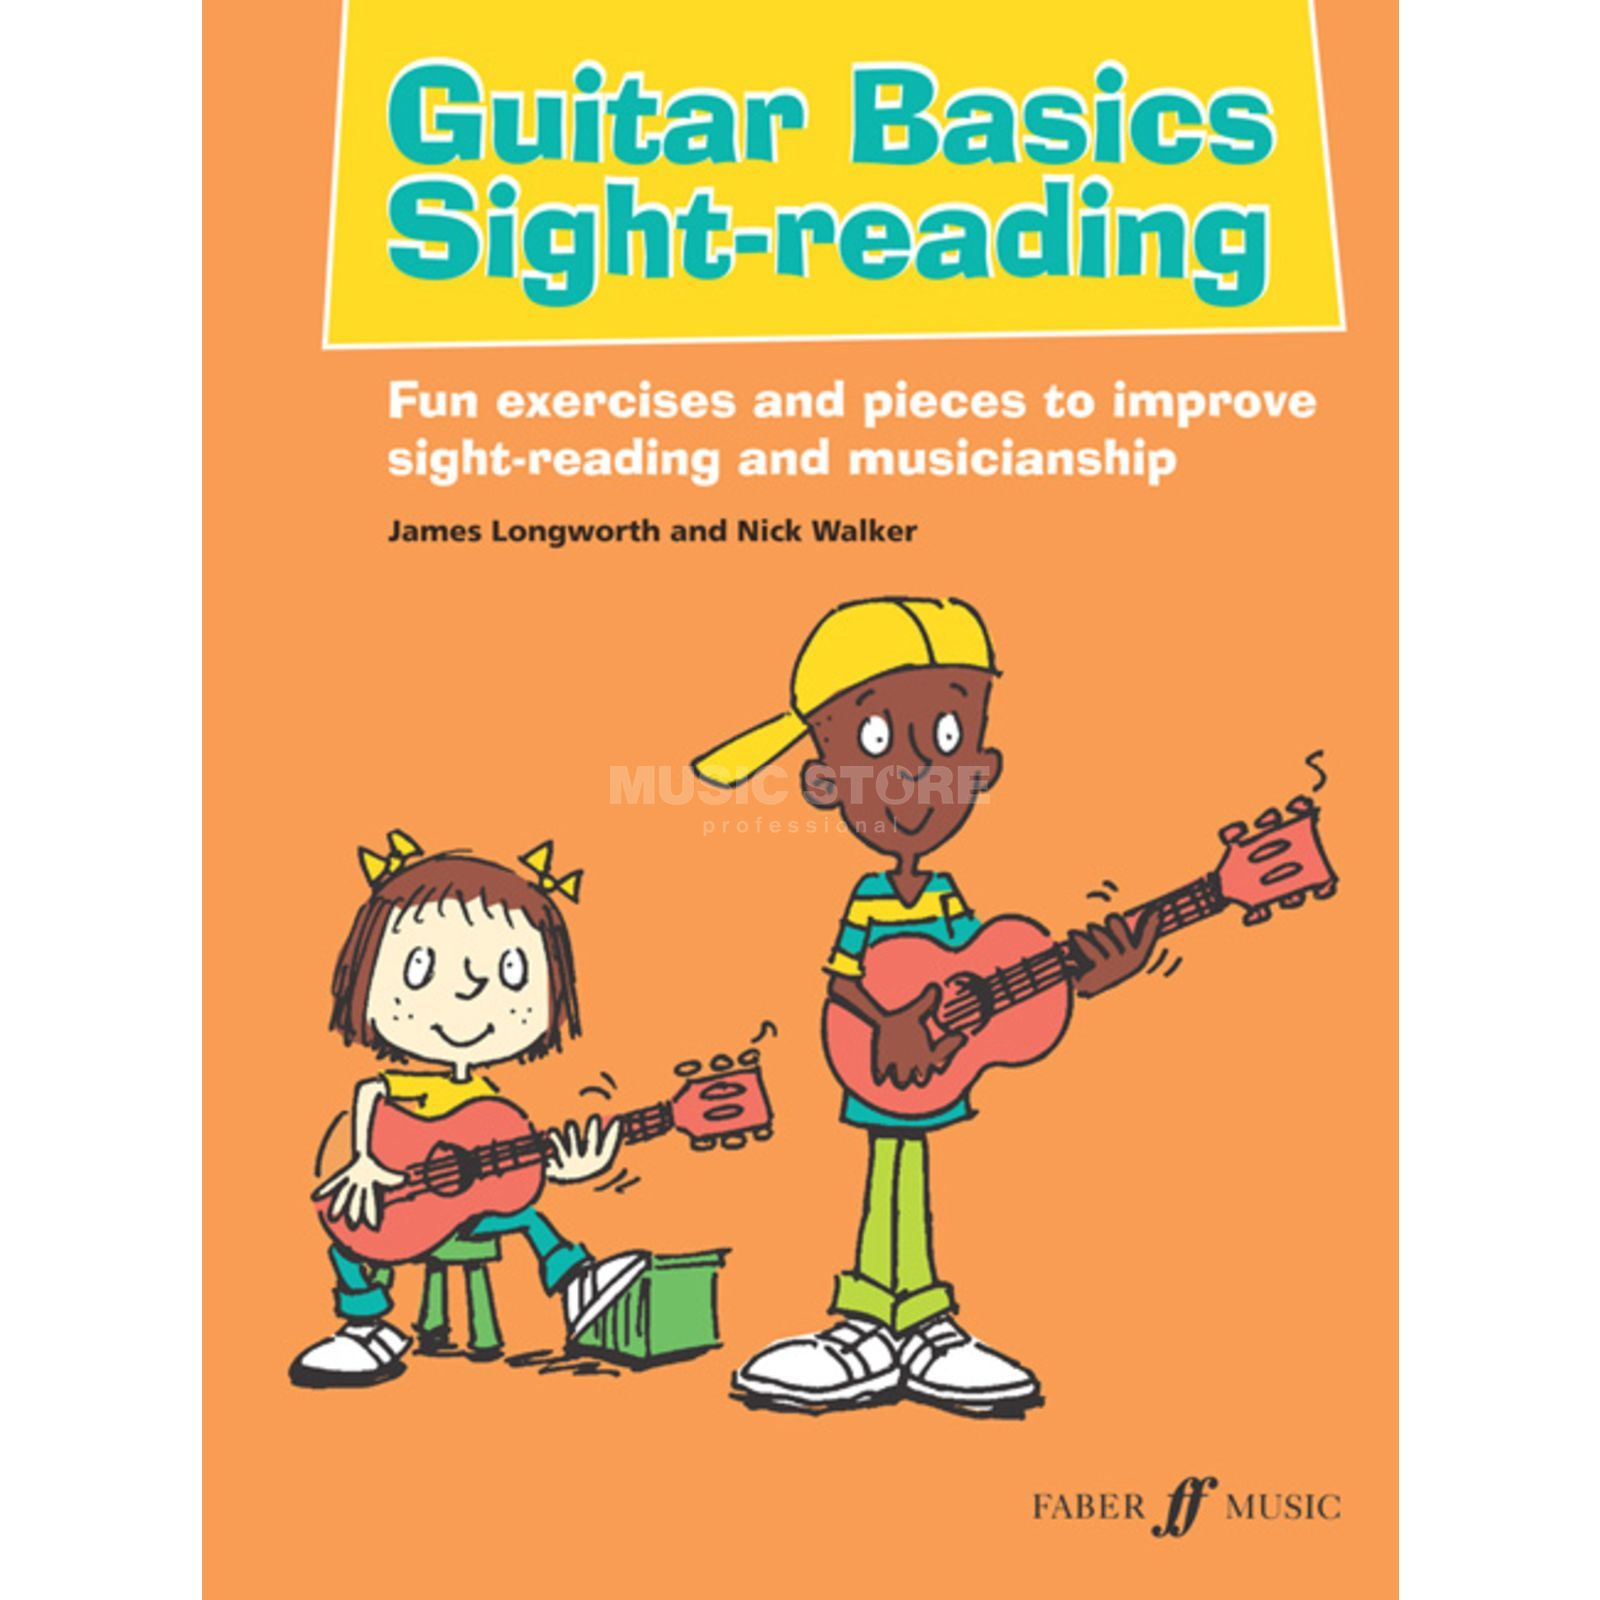 Faber Music Guitar Basics Sight-Reading Walker, Longworth Image du produit